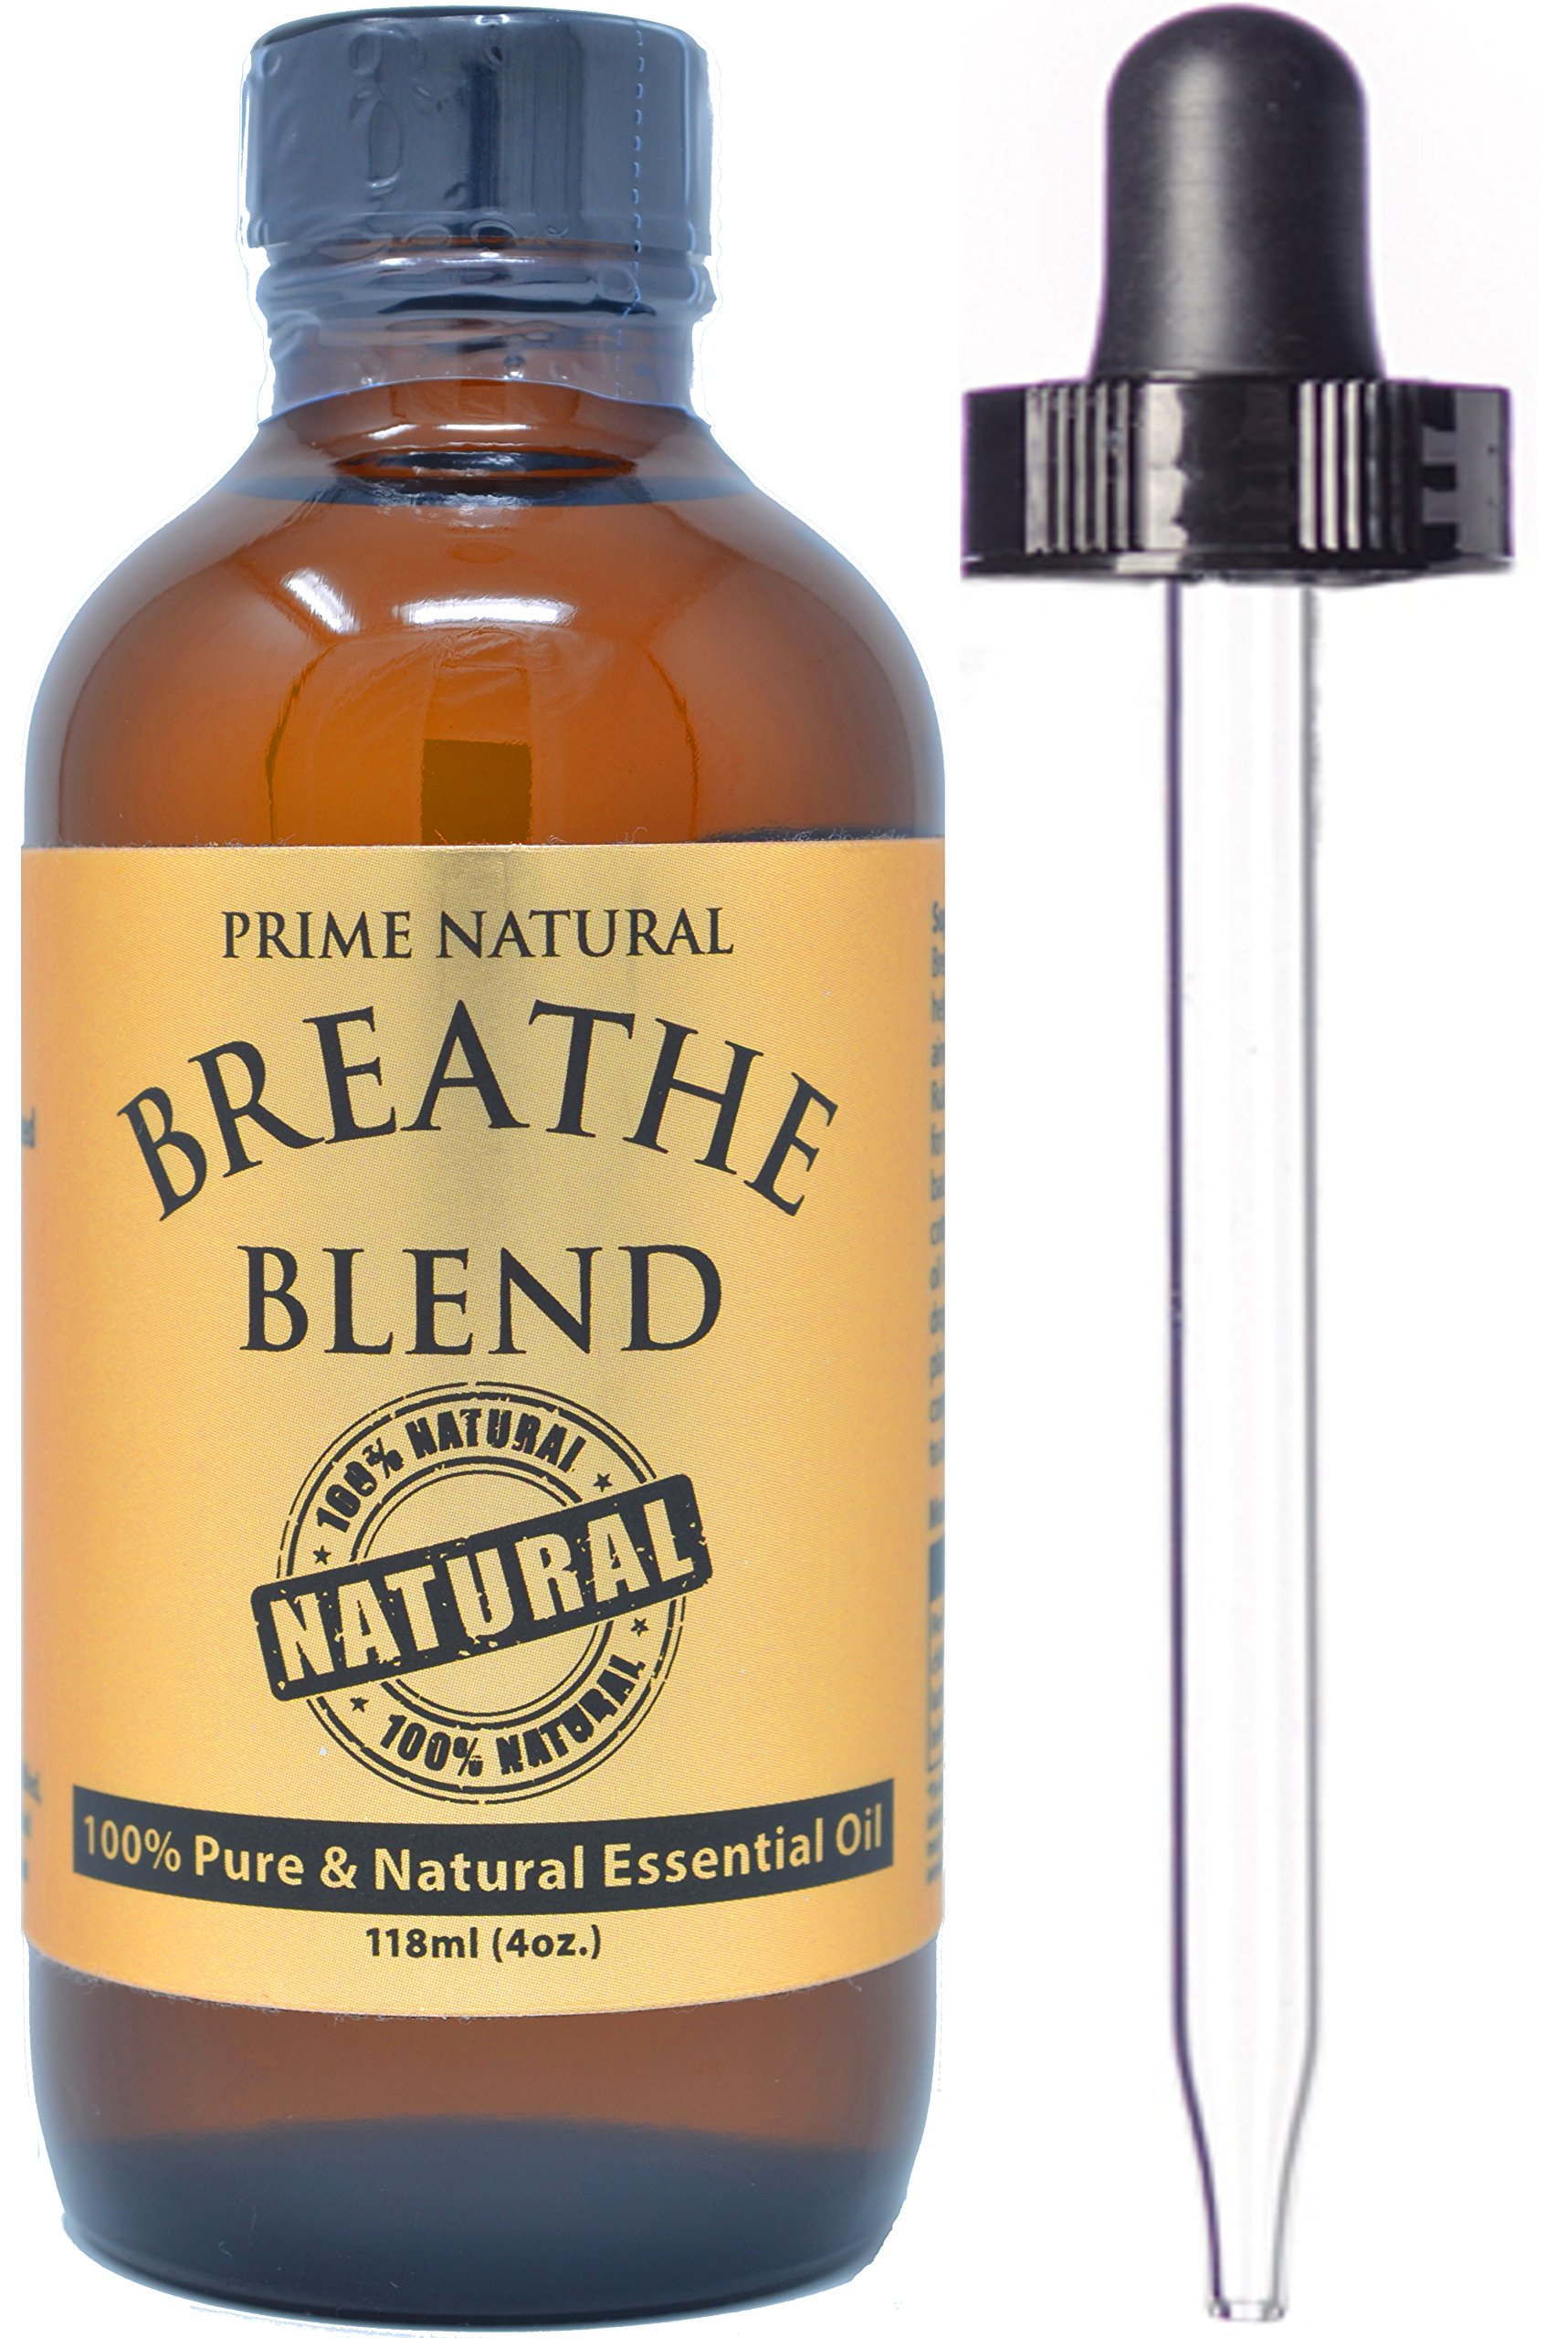 Breathe Essential Oil Blend 4oz / 118ml - Pure Undiluted Therapeutic Grade for Aromatherapy, Scents & Diffuser - Sinus Relief, Allergy, Congestion, Cold, Cough, Headache, Respiratory Problems by Prime Natural